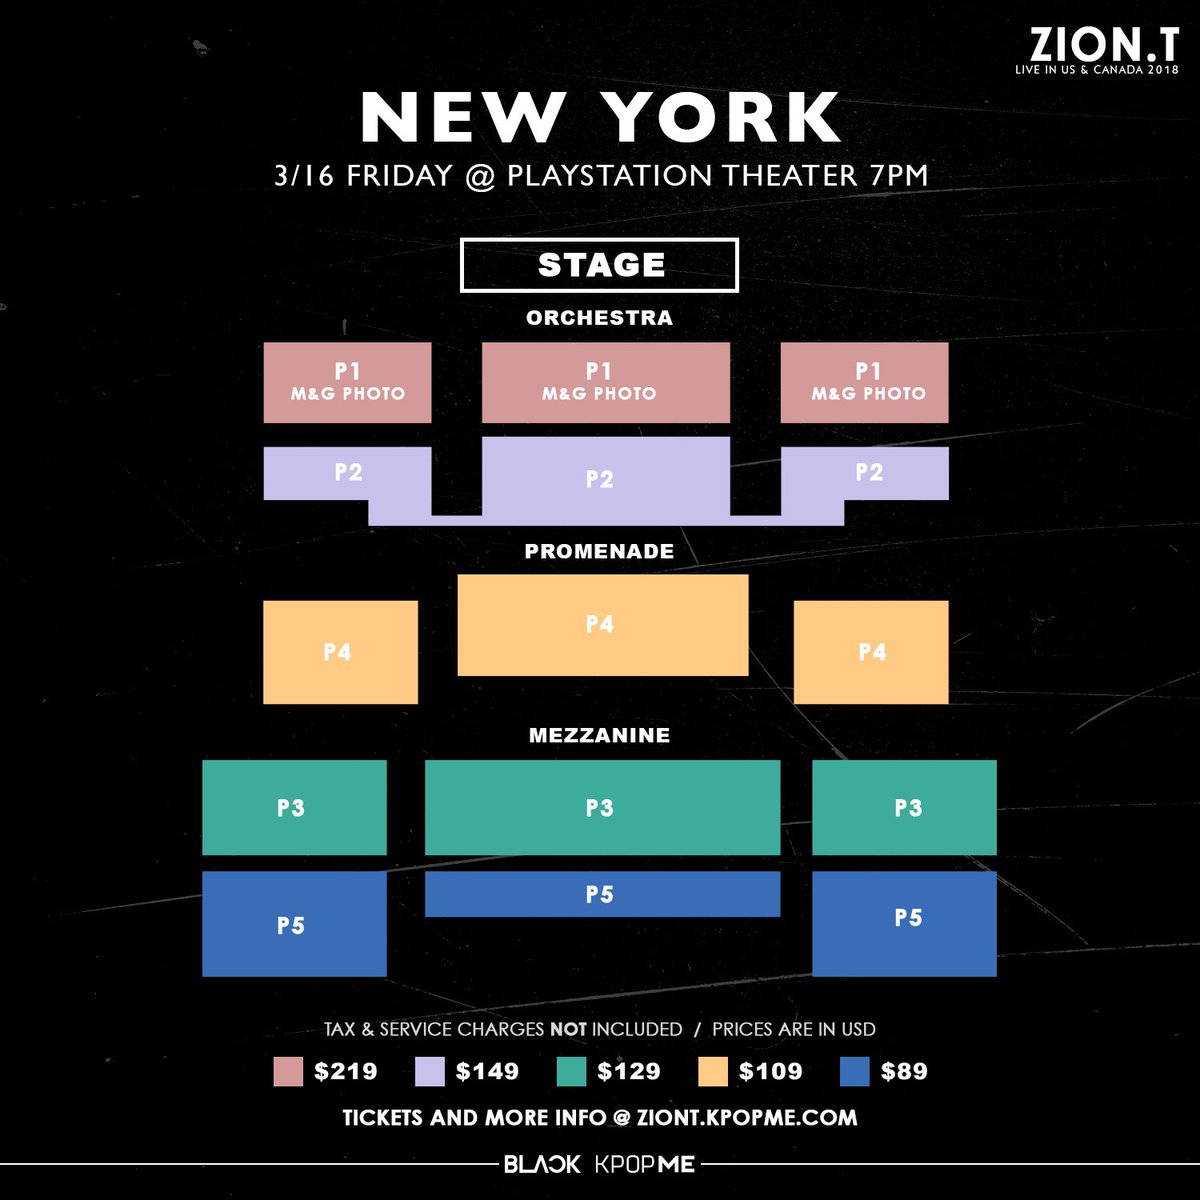 Kpopme On Twitter New York Are You Ready For Ziont Heres